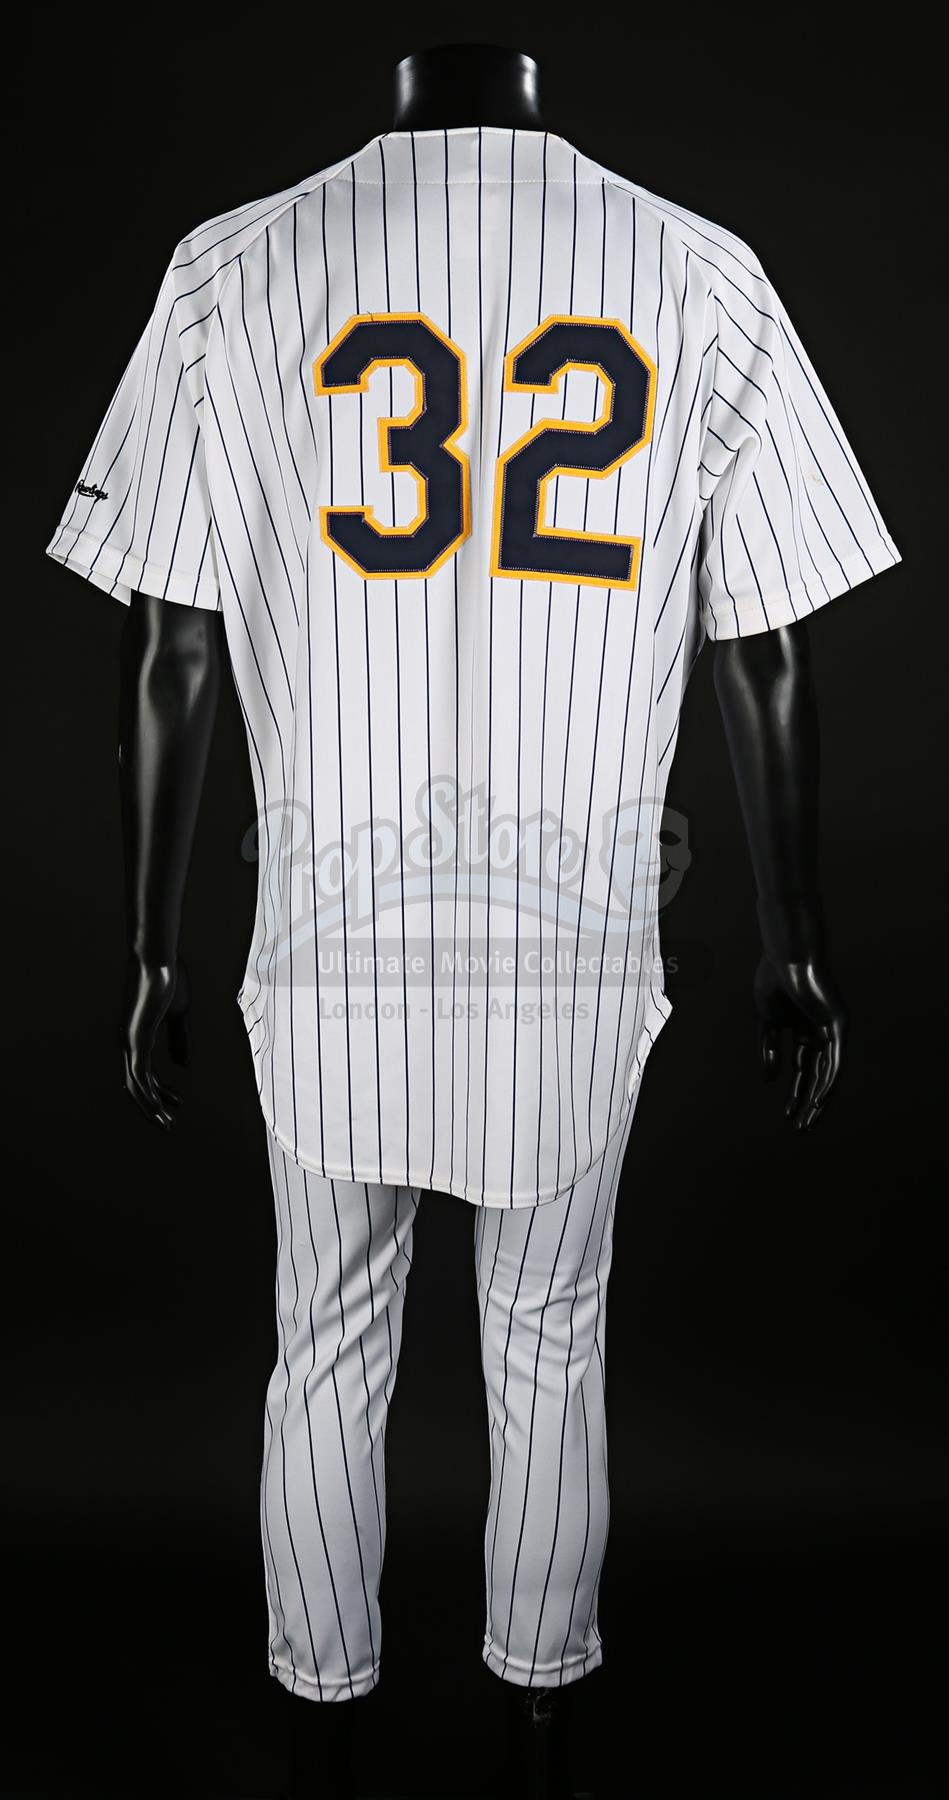 Major league back to the minors 1998 baseball jersey and lot 128 malvernweather Image collections